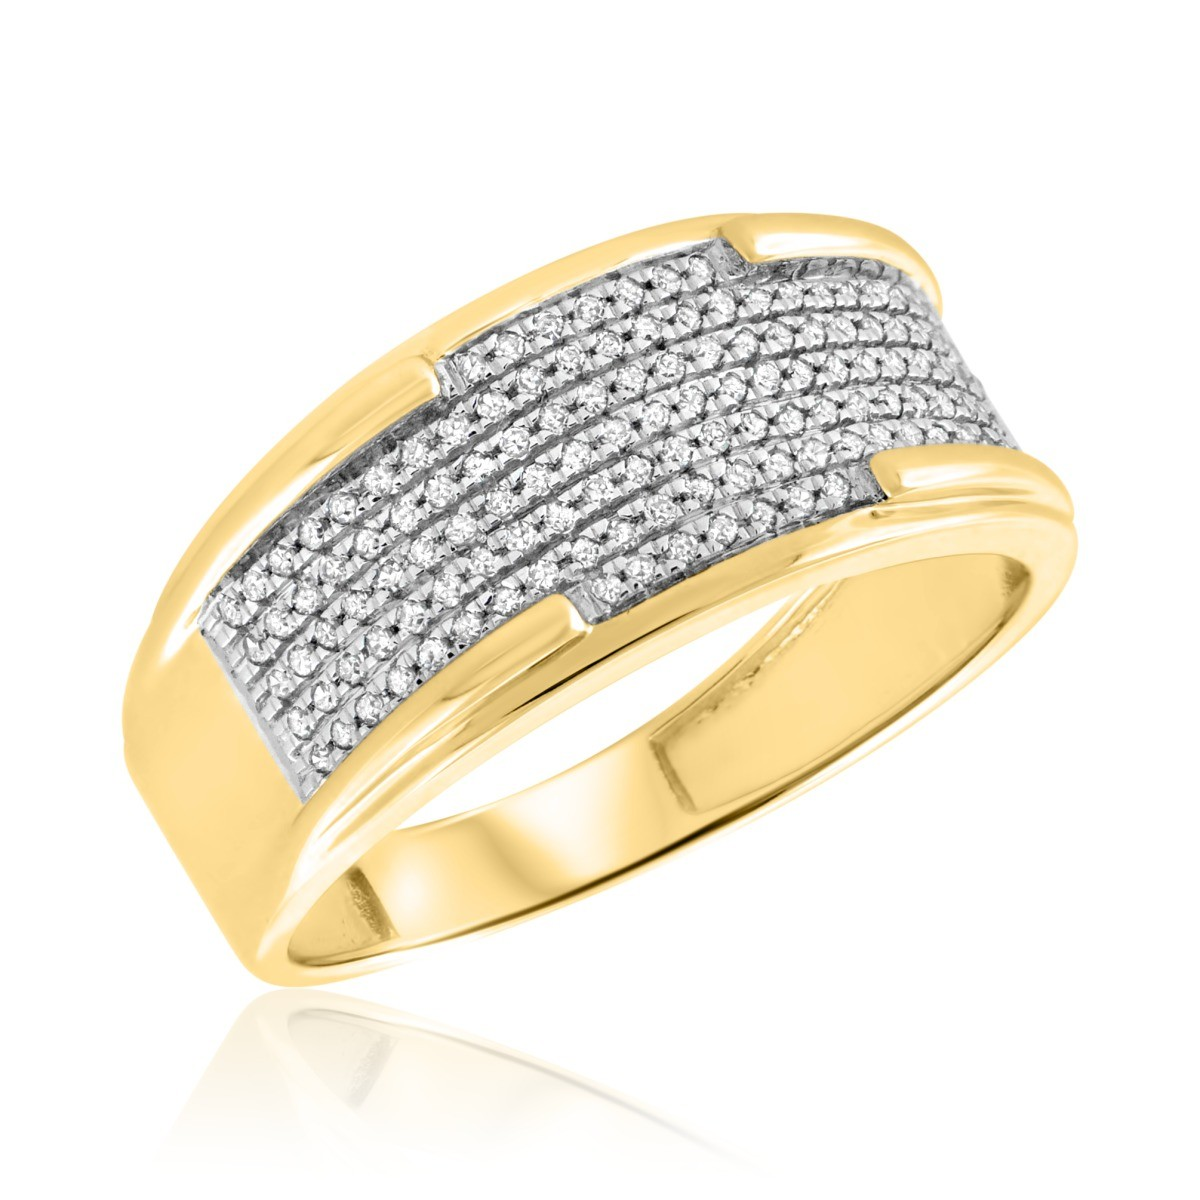 1/3 CT. T.W. Diamond Mens Wedding Band  14K Yellow Gold